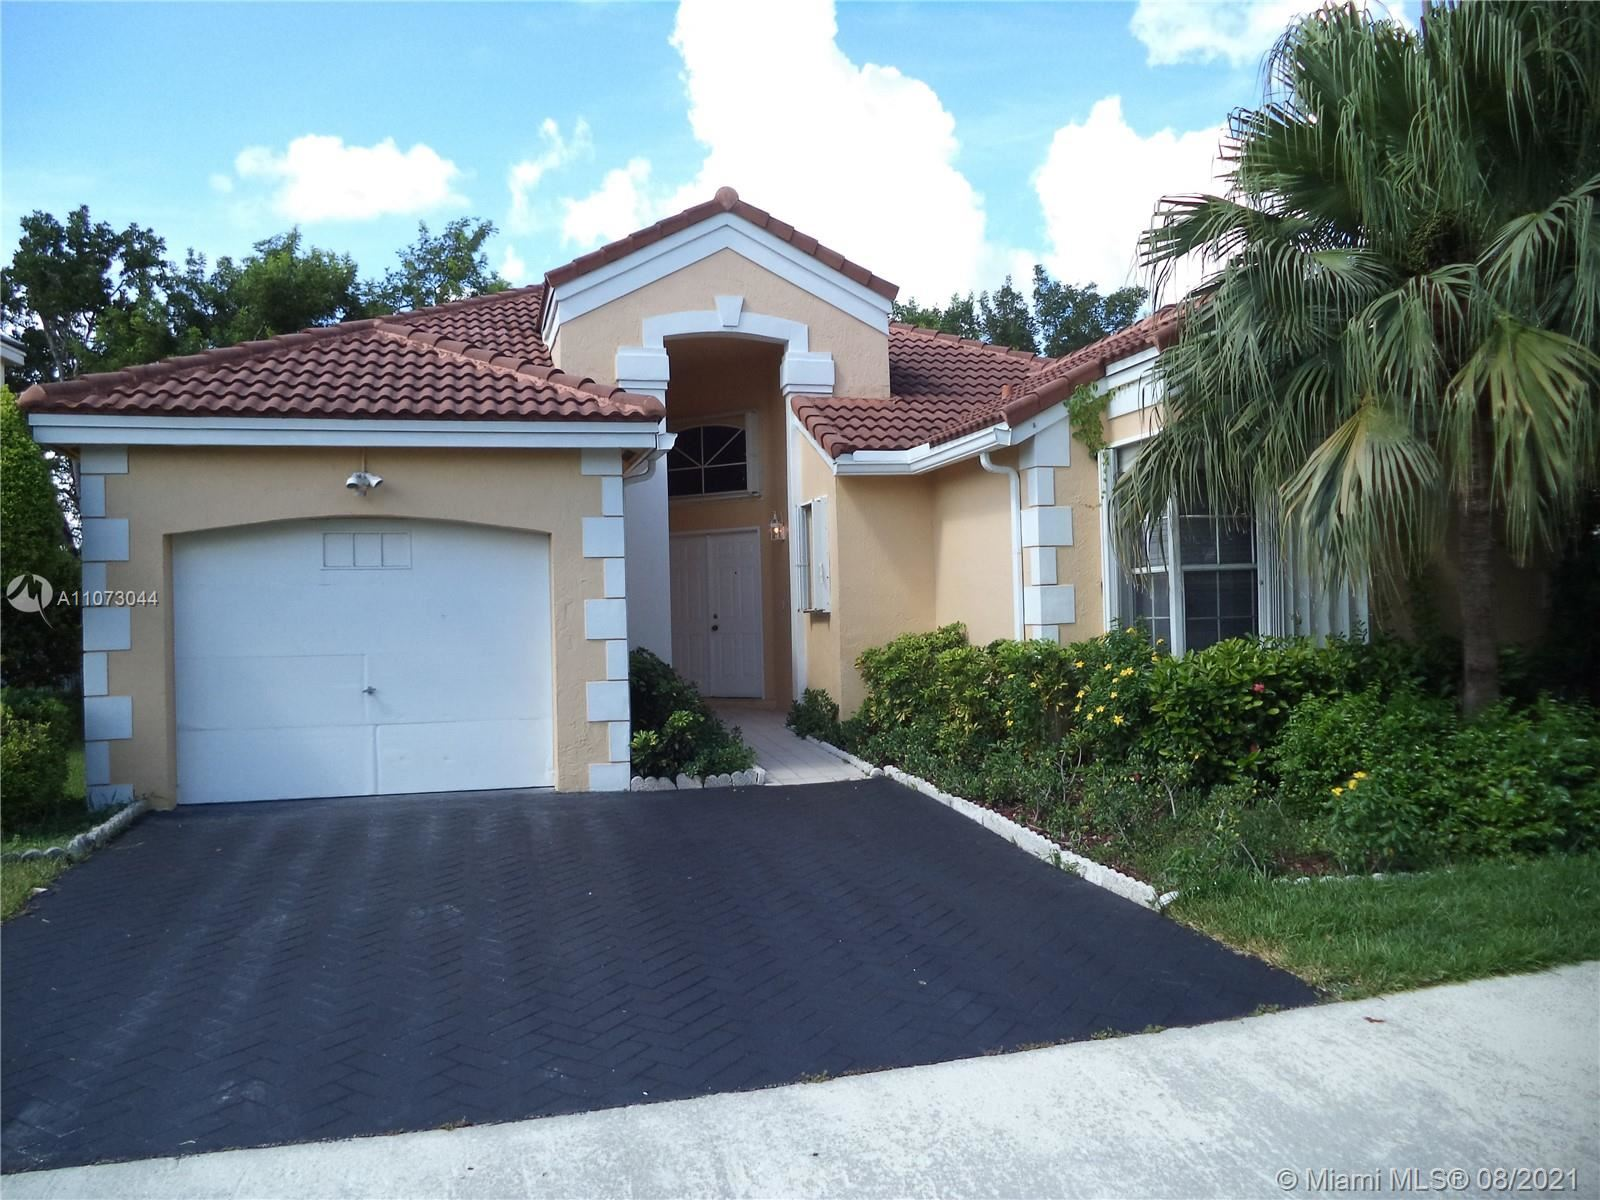 Photo of 583 Bedford Ave, Weston, FL 33326 (MLS # A11073044)